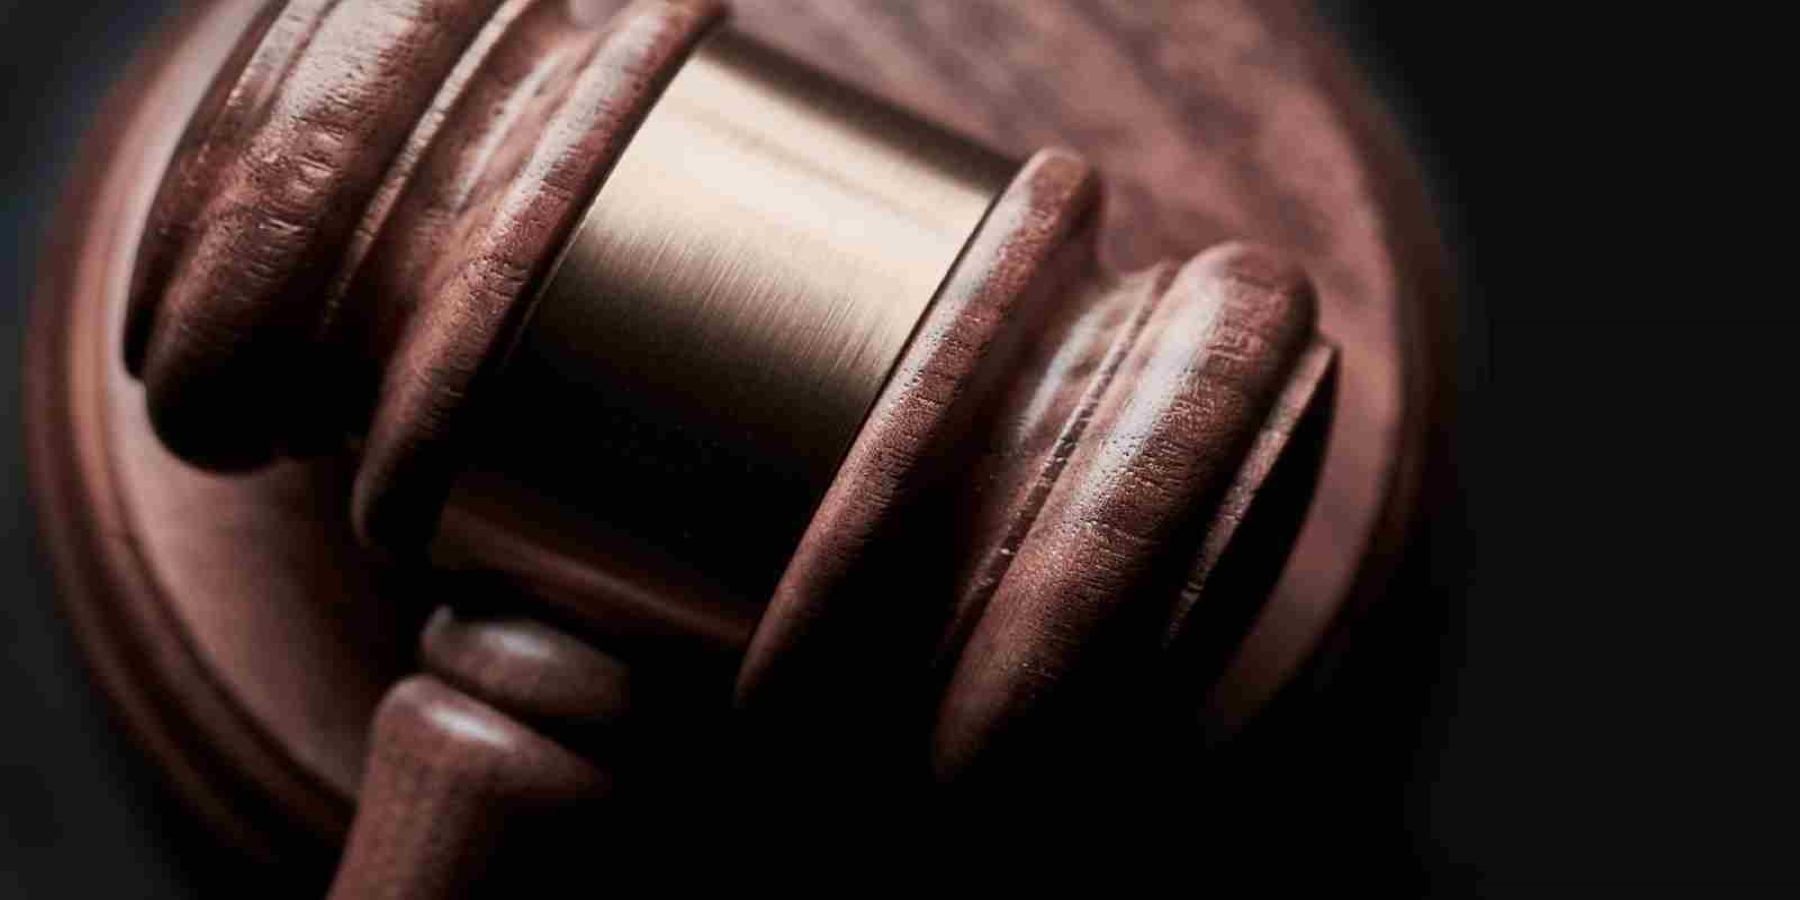 Patent Docs: Federal Circuit narrows scope of enablement for antibody claims